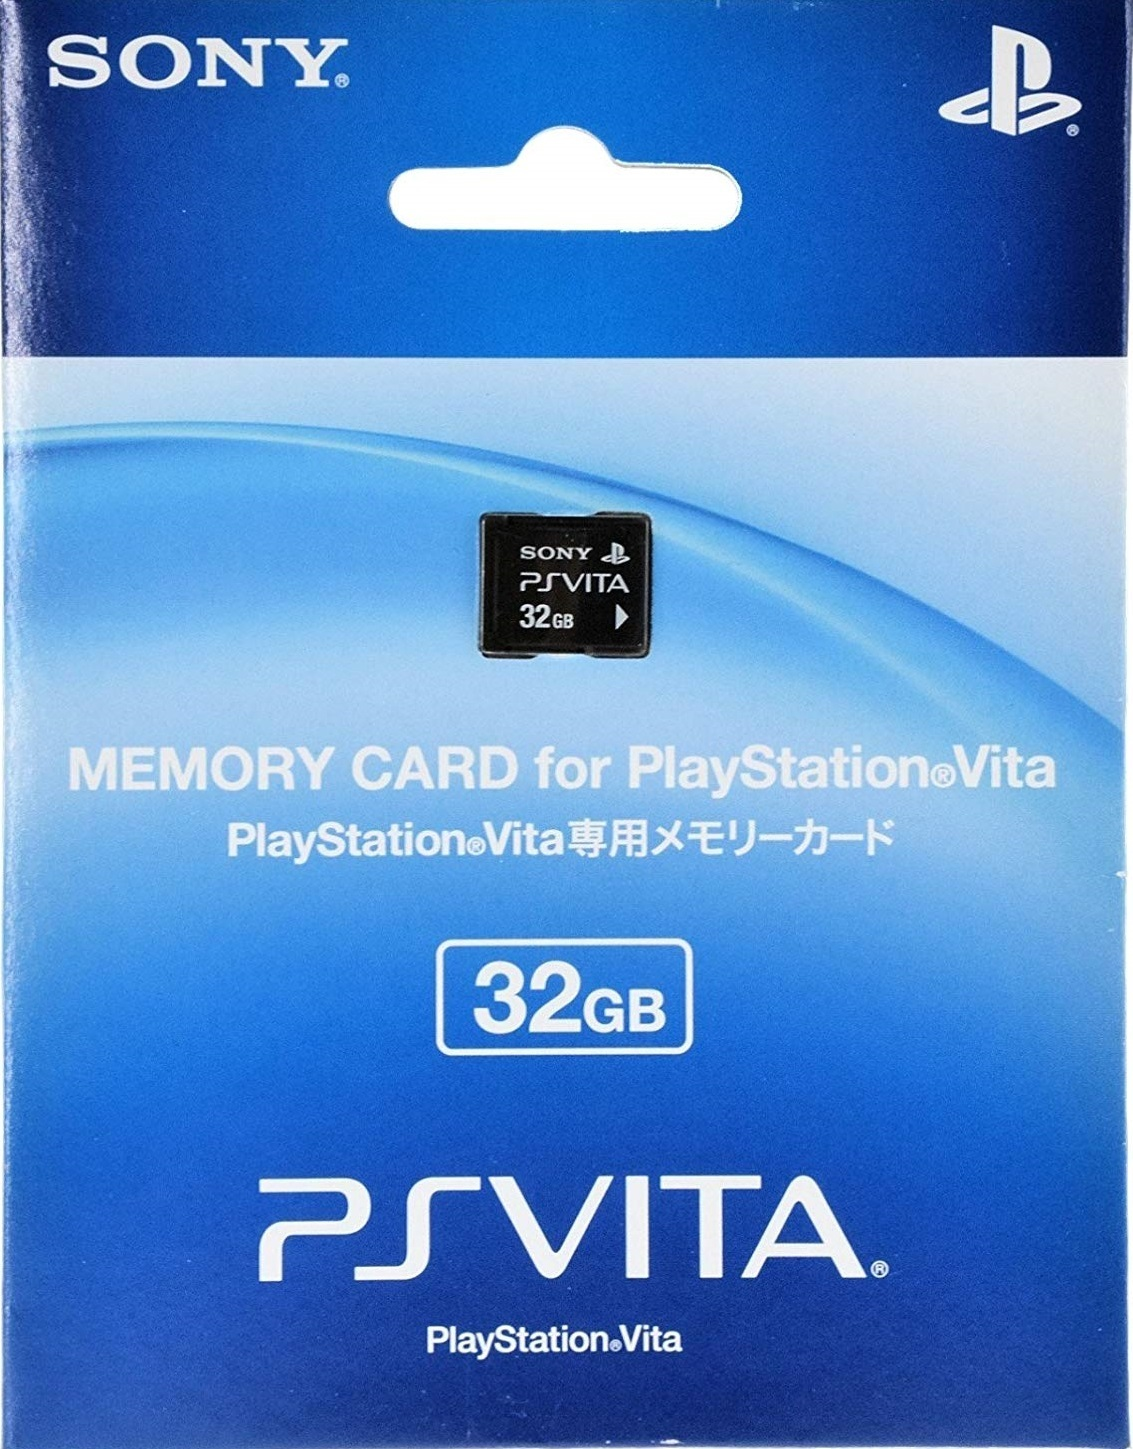 Playstation Vita 32gb Memory Card In Stock Voucher 3 2gb For Image